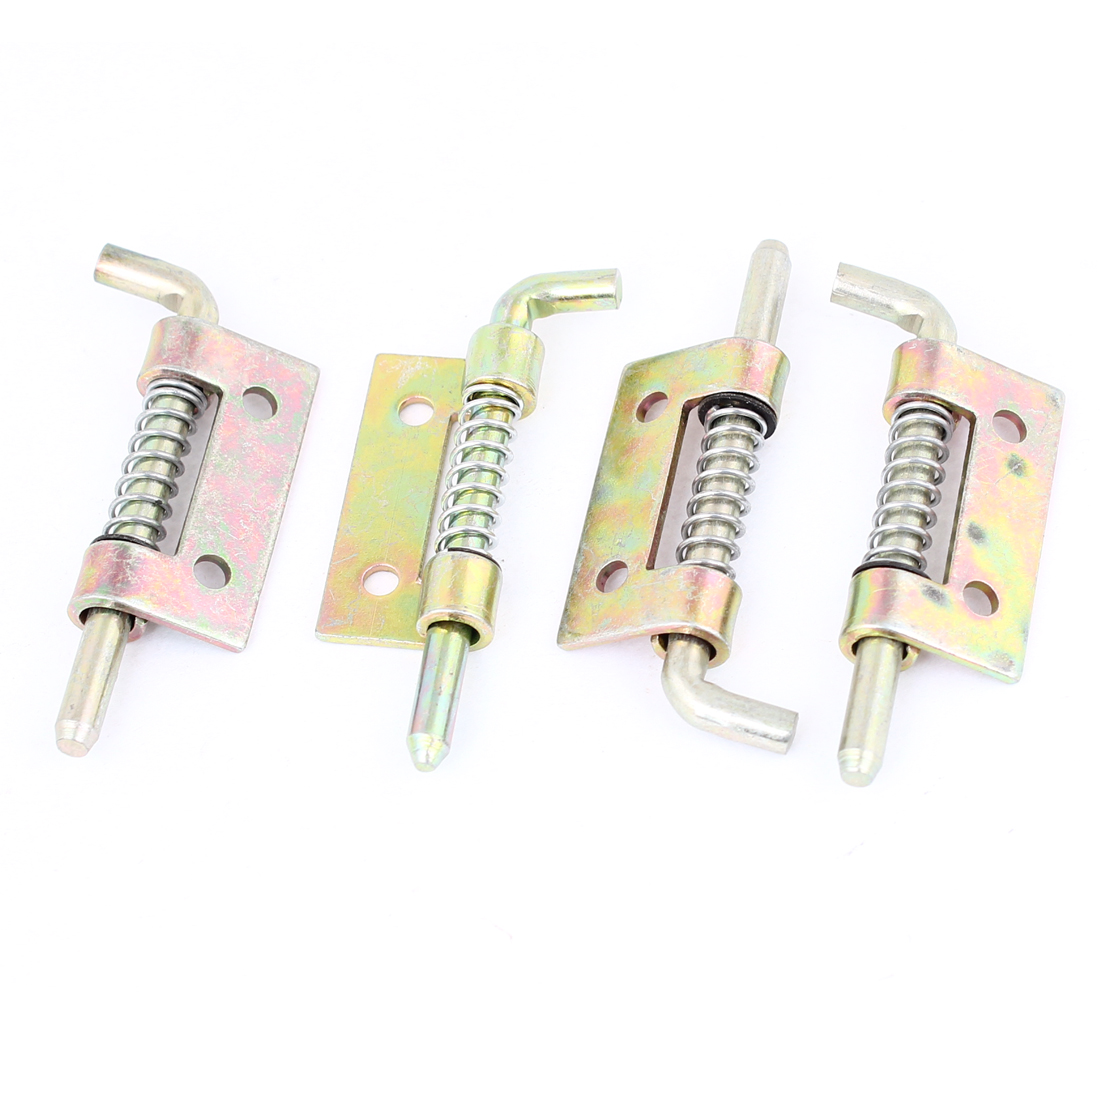 4 Pcs Locked Spring Loaded Metal Security Barrel Bolt Latch 5.5cm